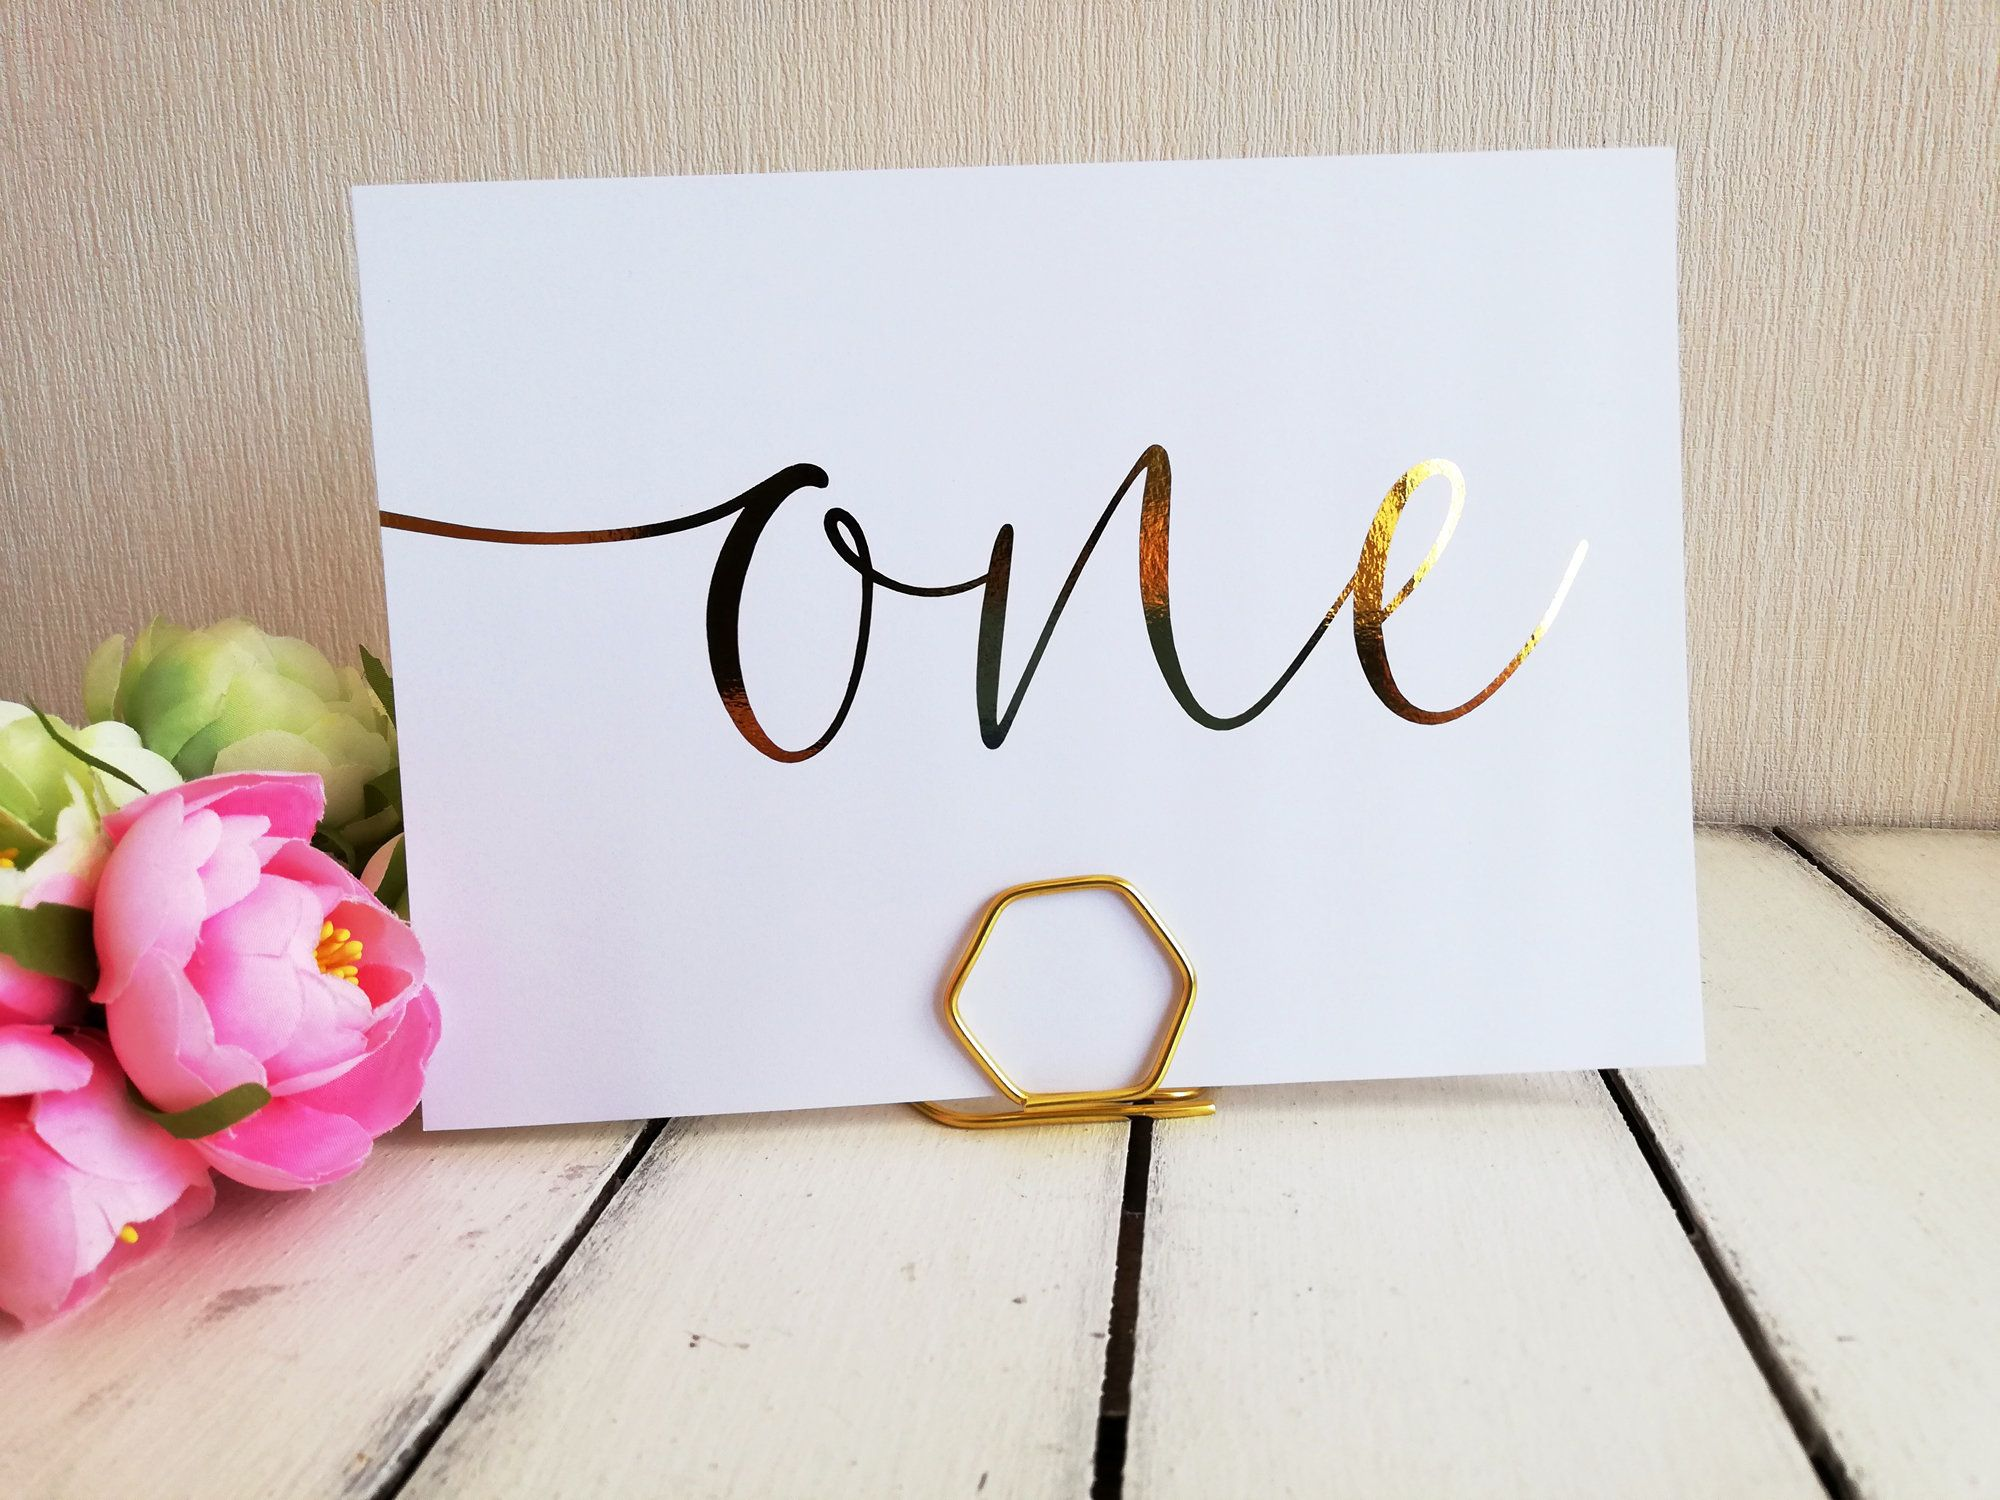 Gold Table Number Holders Polygon Hexagon Menu Stand Boho Wedding Wedding Silver Table Numbers Holders Card Hold Table Number Holder In 2020 Gold Table Numbers Gold Table Number Holders Gold Table